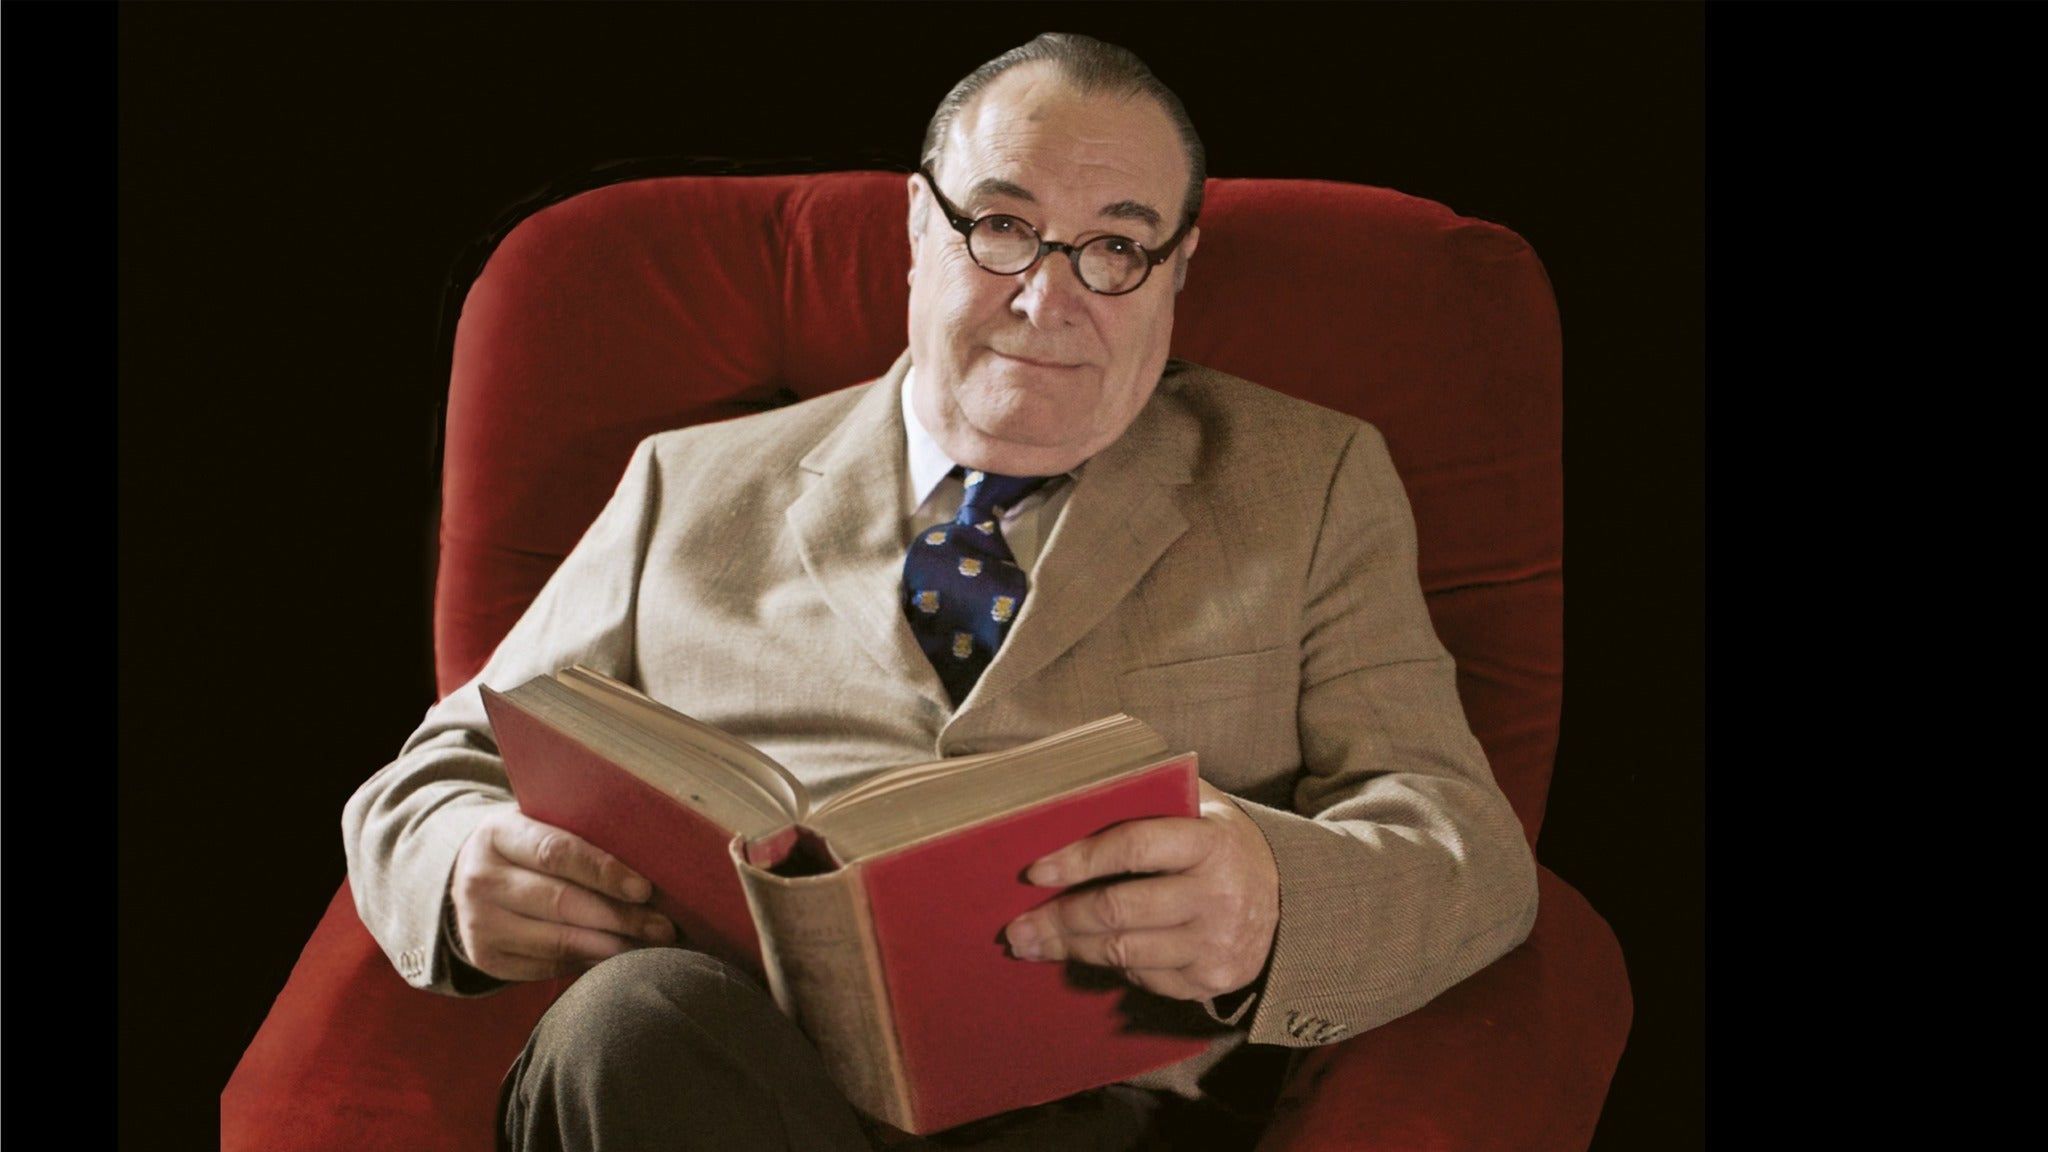 My Life's Journey - An Evening With C.S. Lewis (Touring)